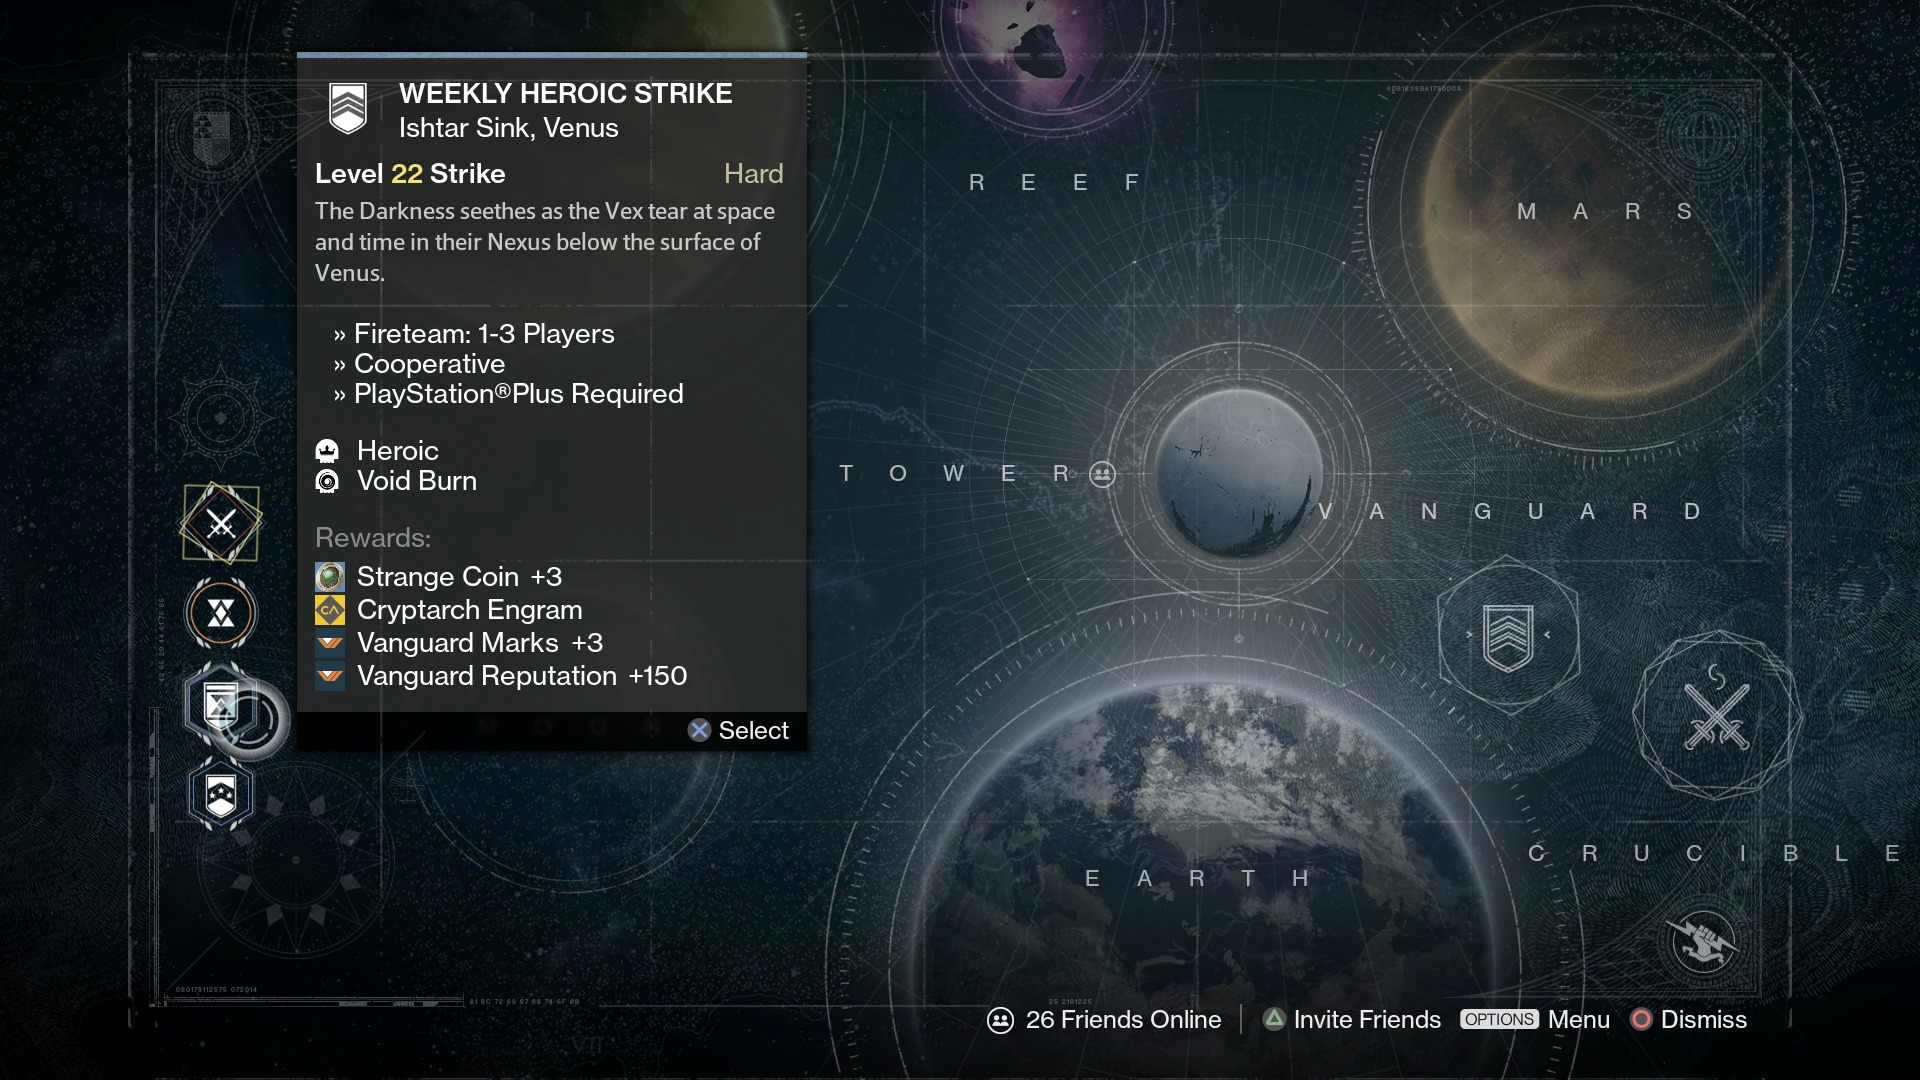 Destiny Update Adds Matchmaking to Weekly Heroic Strikes